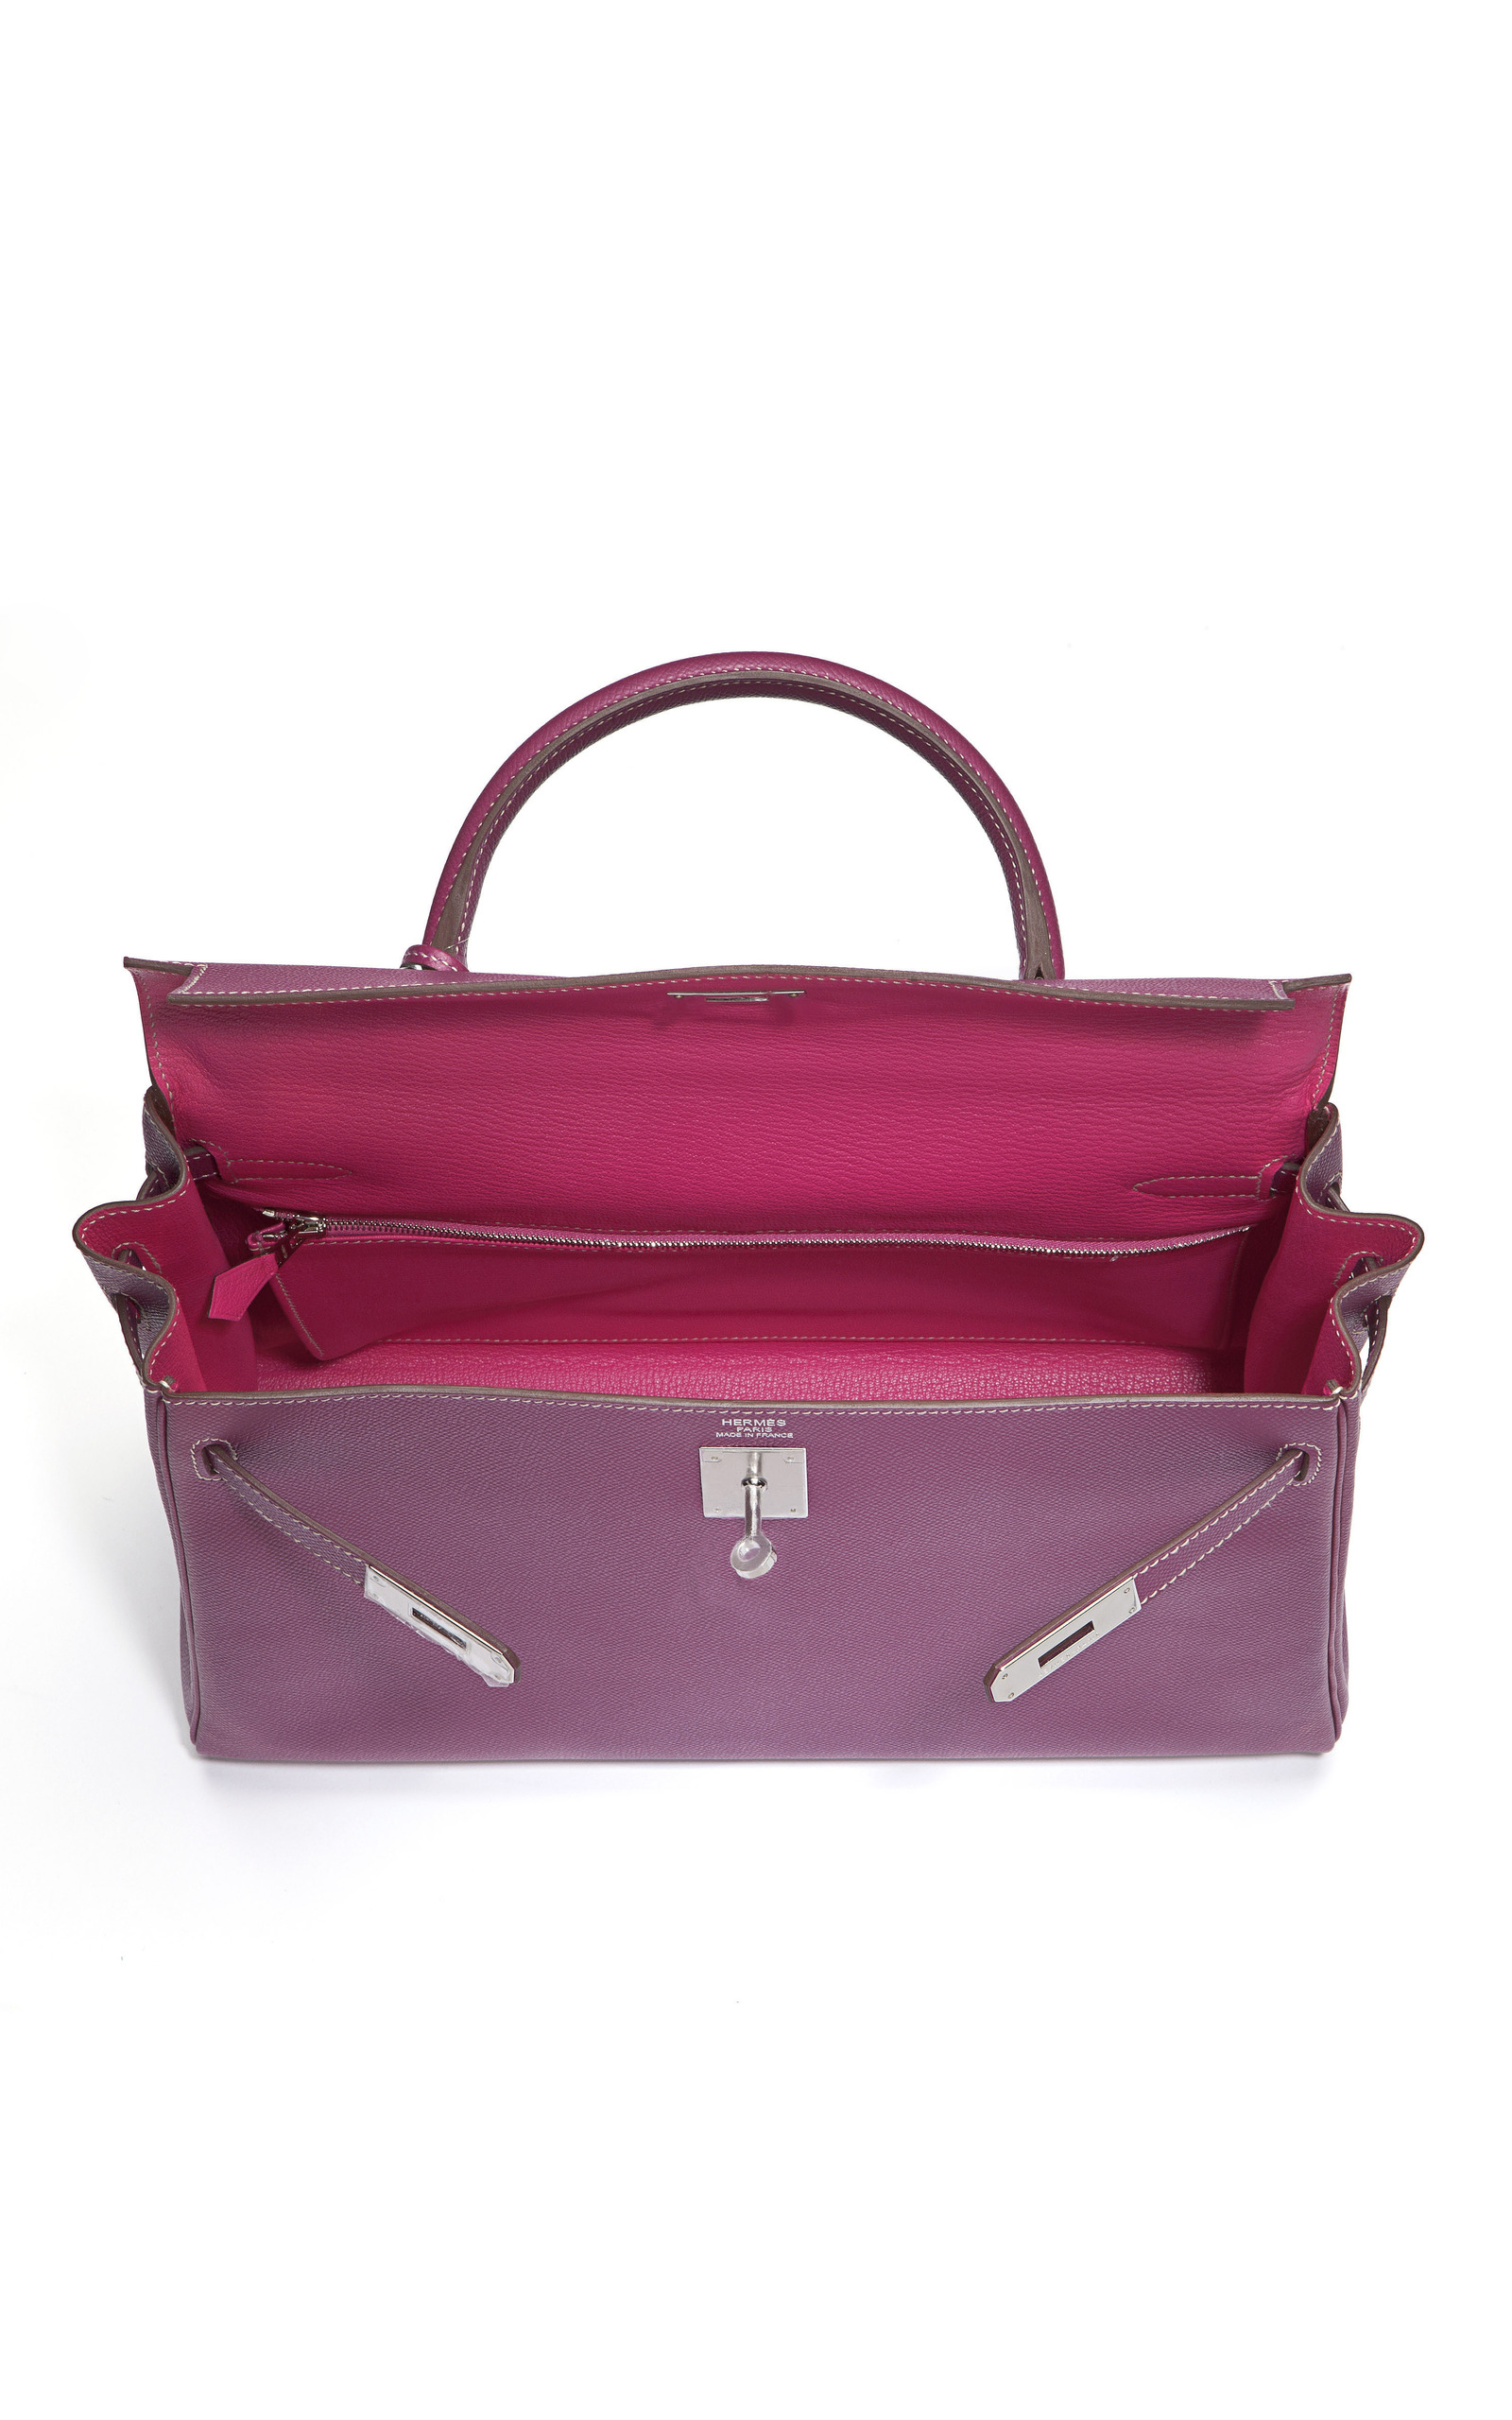 35cm Tosca  amp  Rose Tyrien Epsom Leather Kelly by  479a2c71eb6db